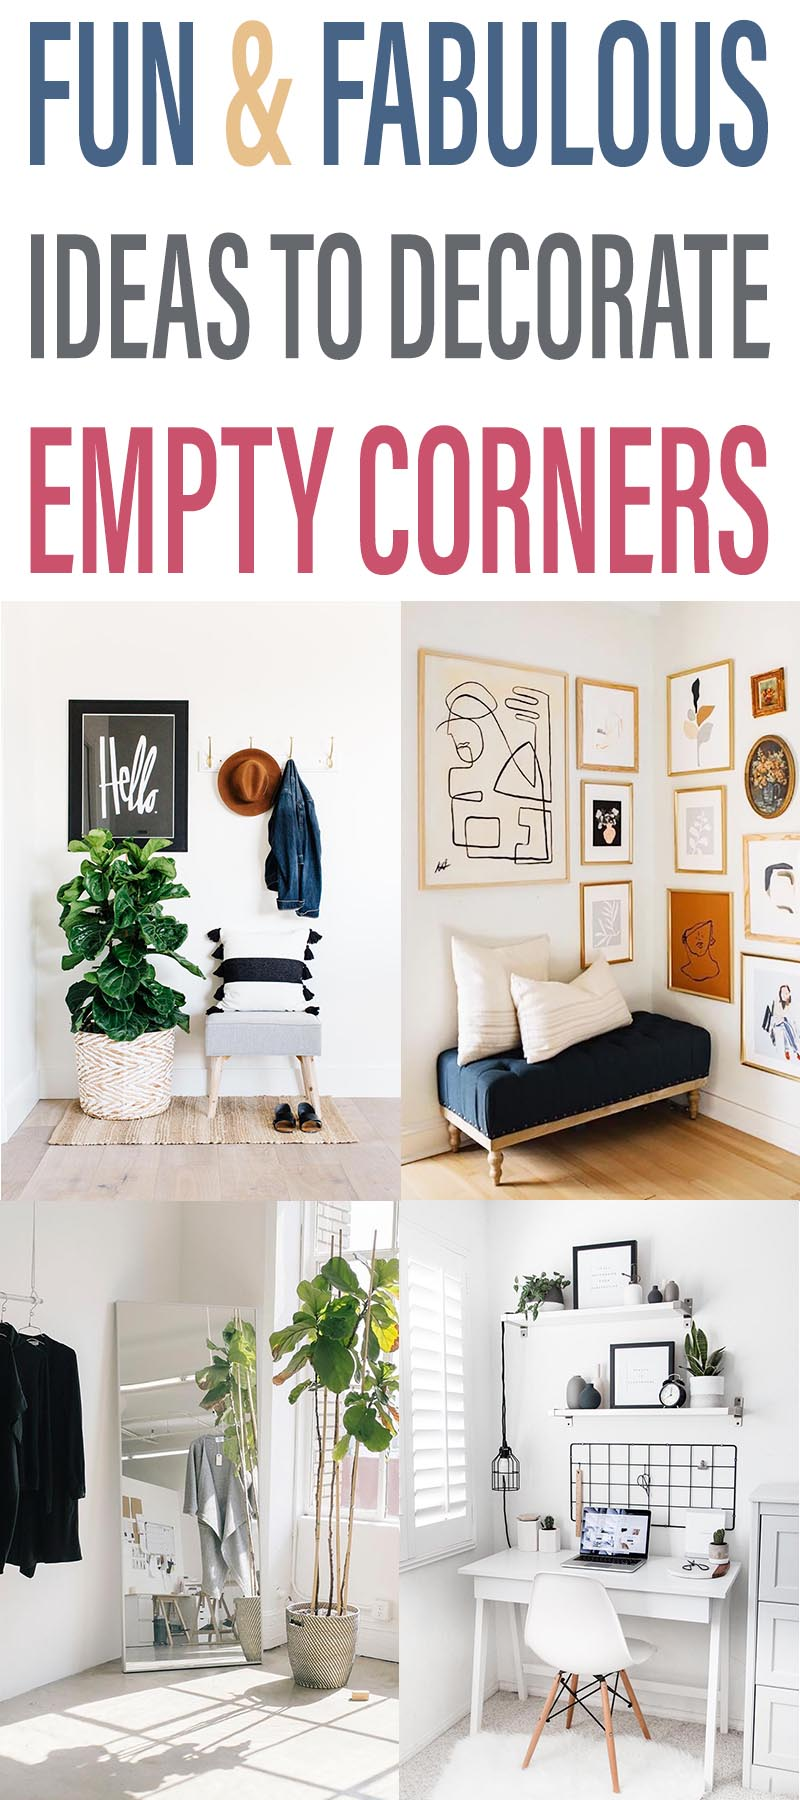 Fun And Fabulous Ways To Decorate Empty Corners The Cottage Market